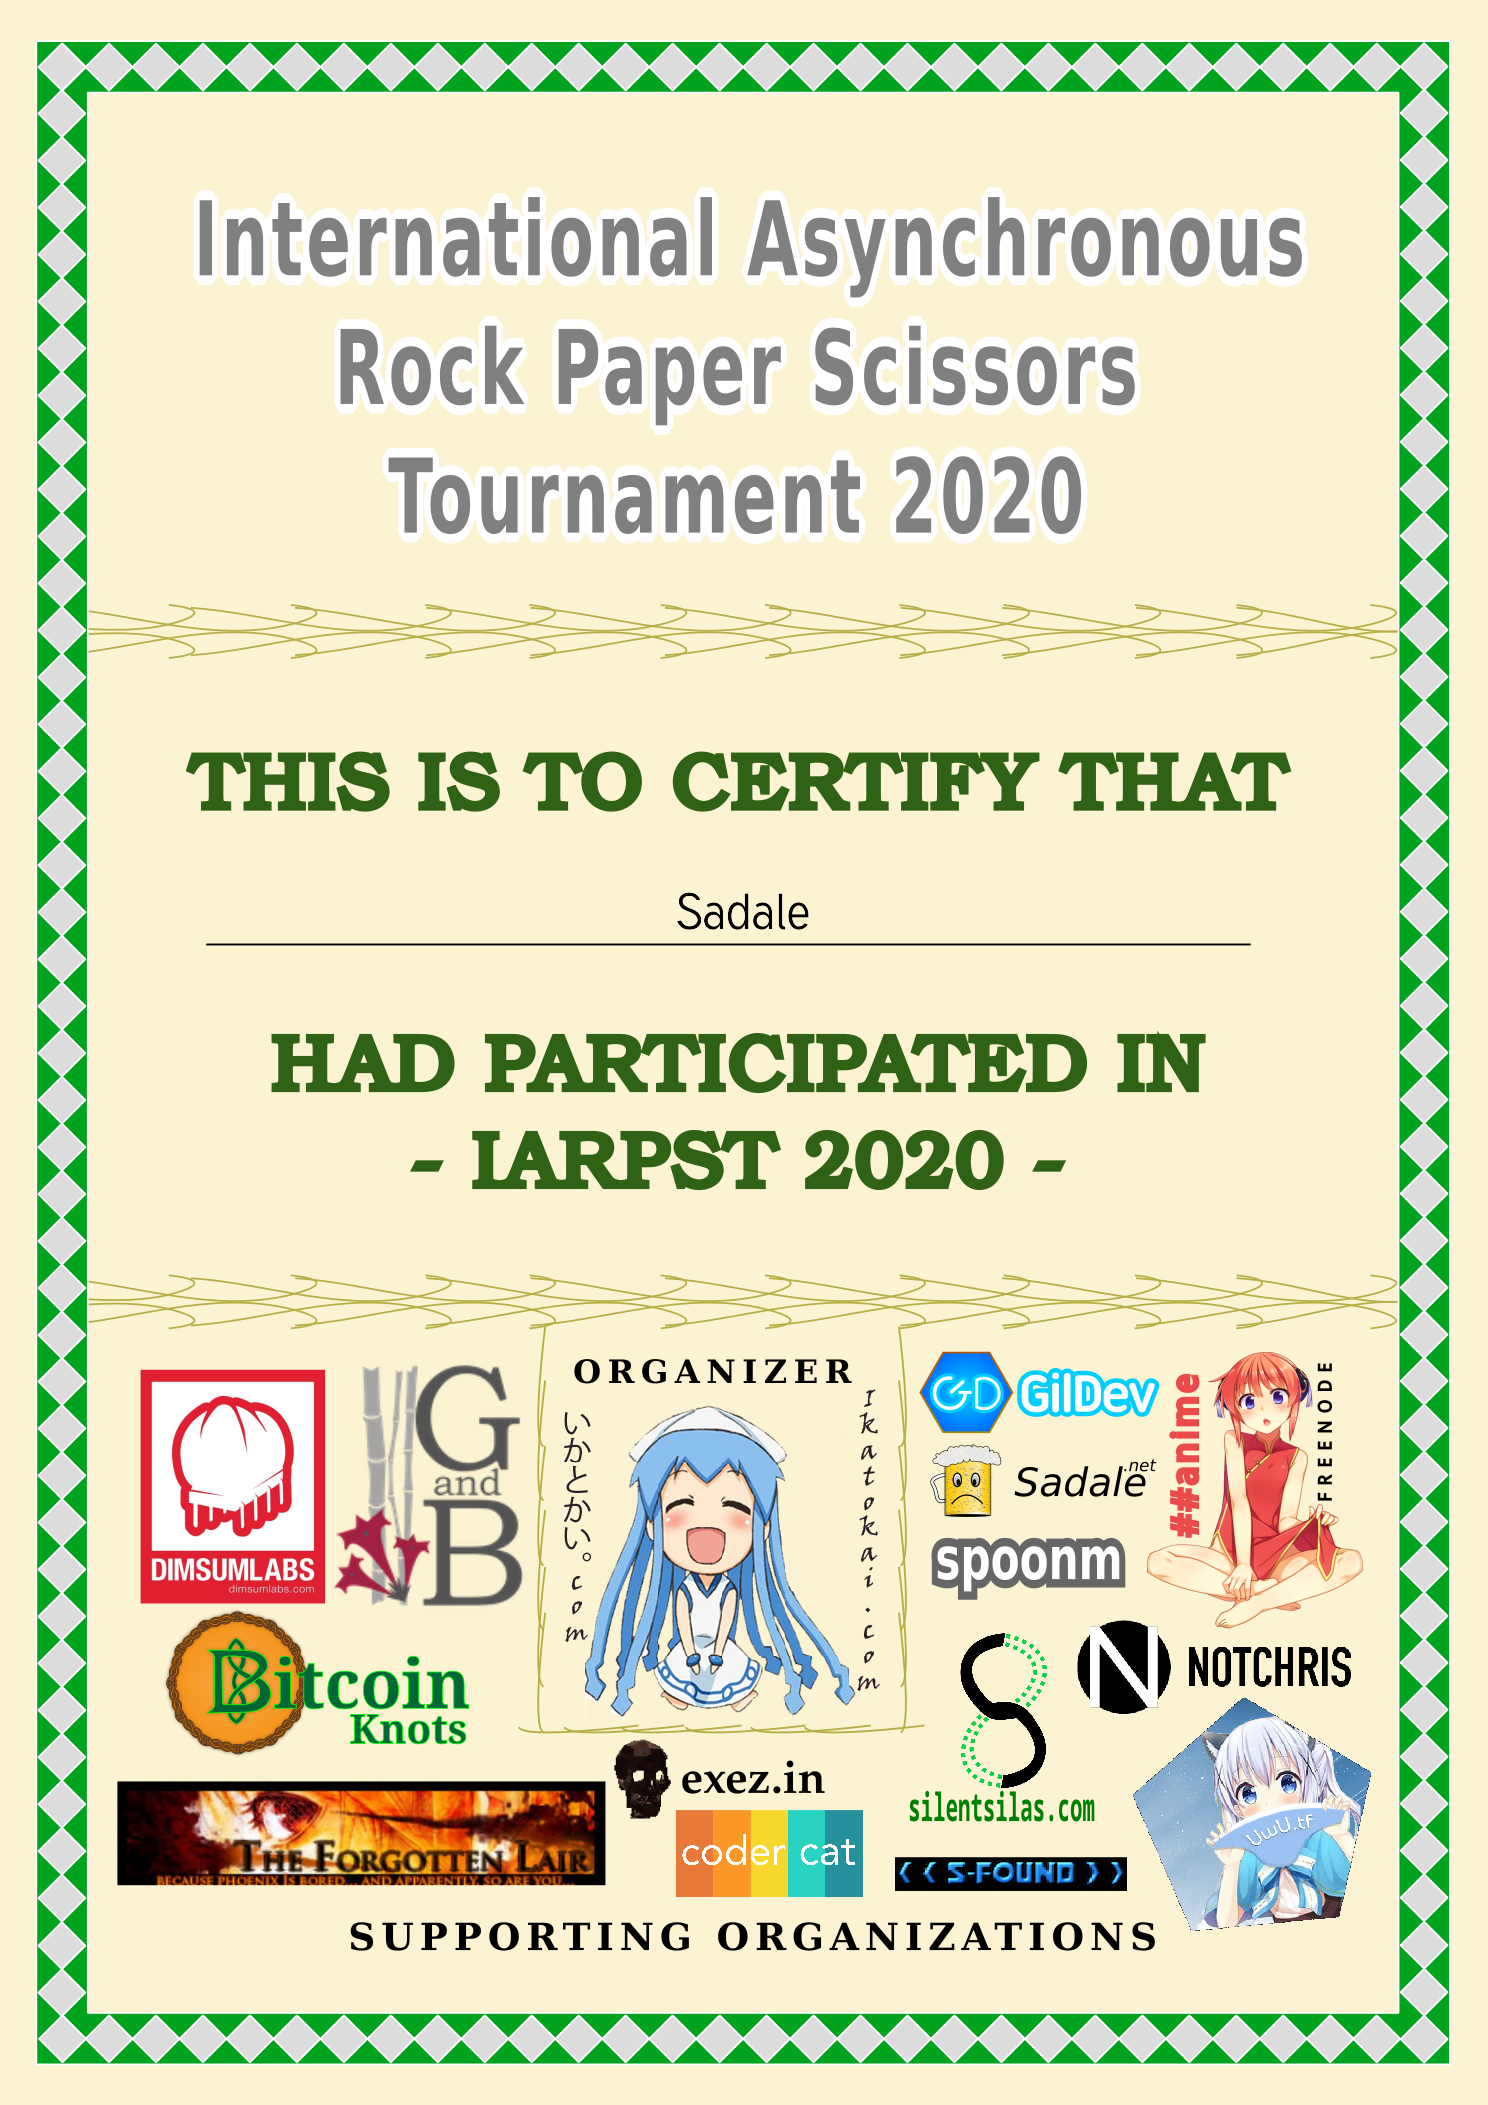 Sadale's participation certificate of International Asynchronous Rock Paper Scissors Tournament 2020